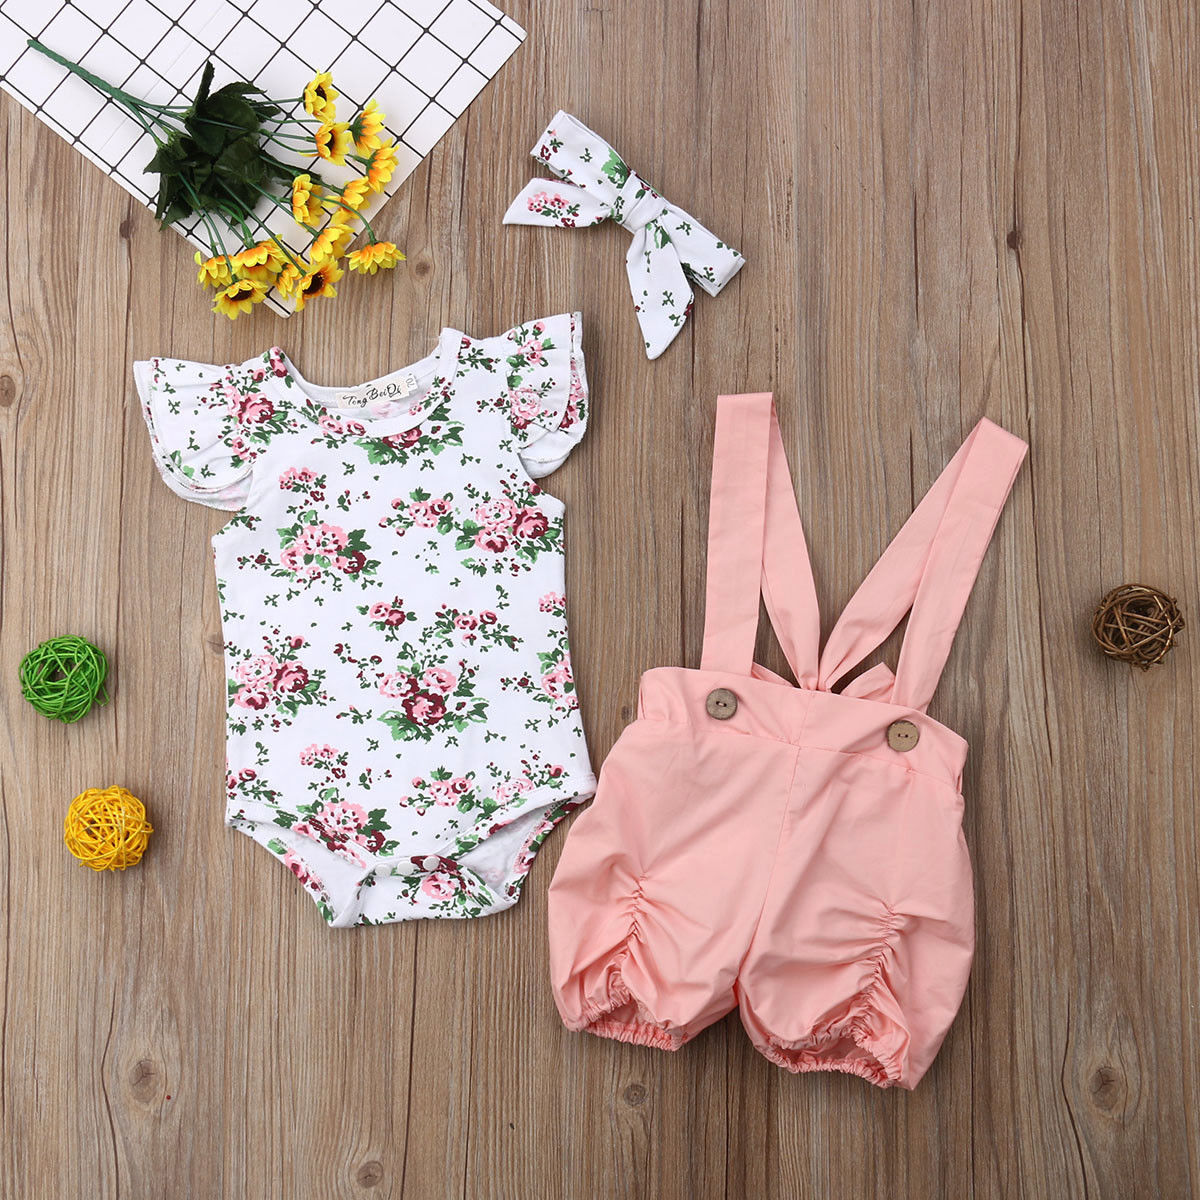 2019 Telotuny Kid Casual Clothing Set Cotton Blend 3Pcs Baby Toddler Girls Kids Overalls Braces+Headband+Romper Clothes Outfits